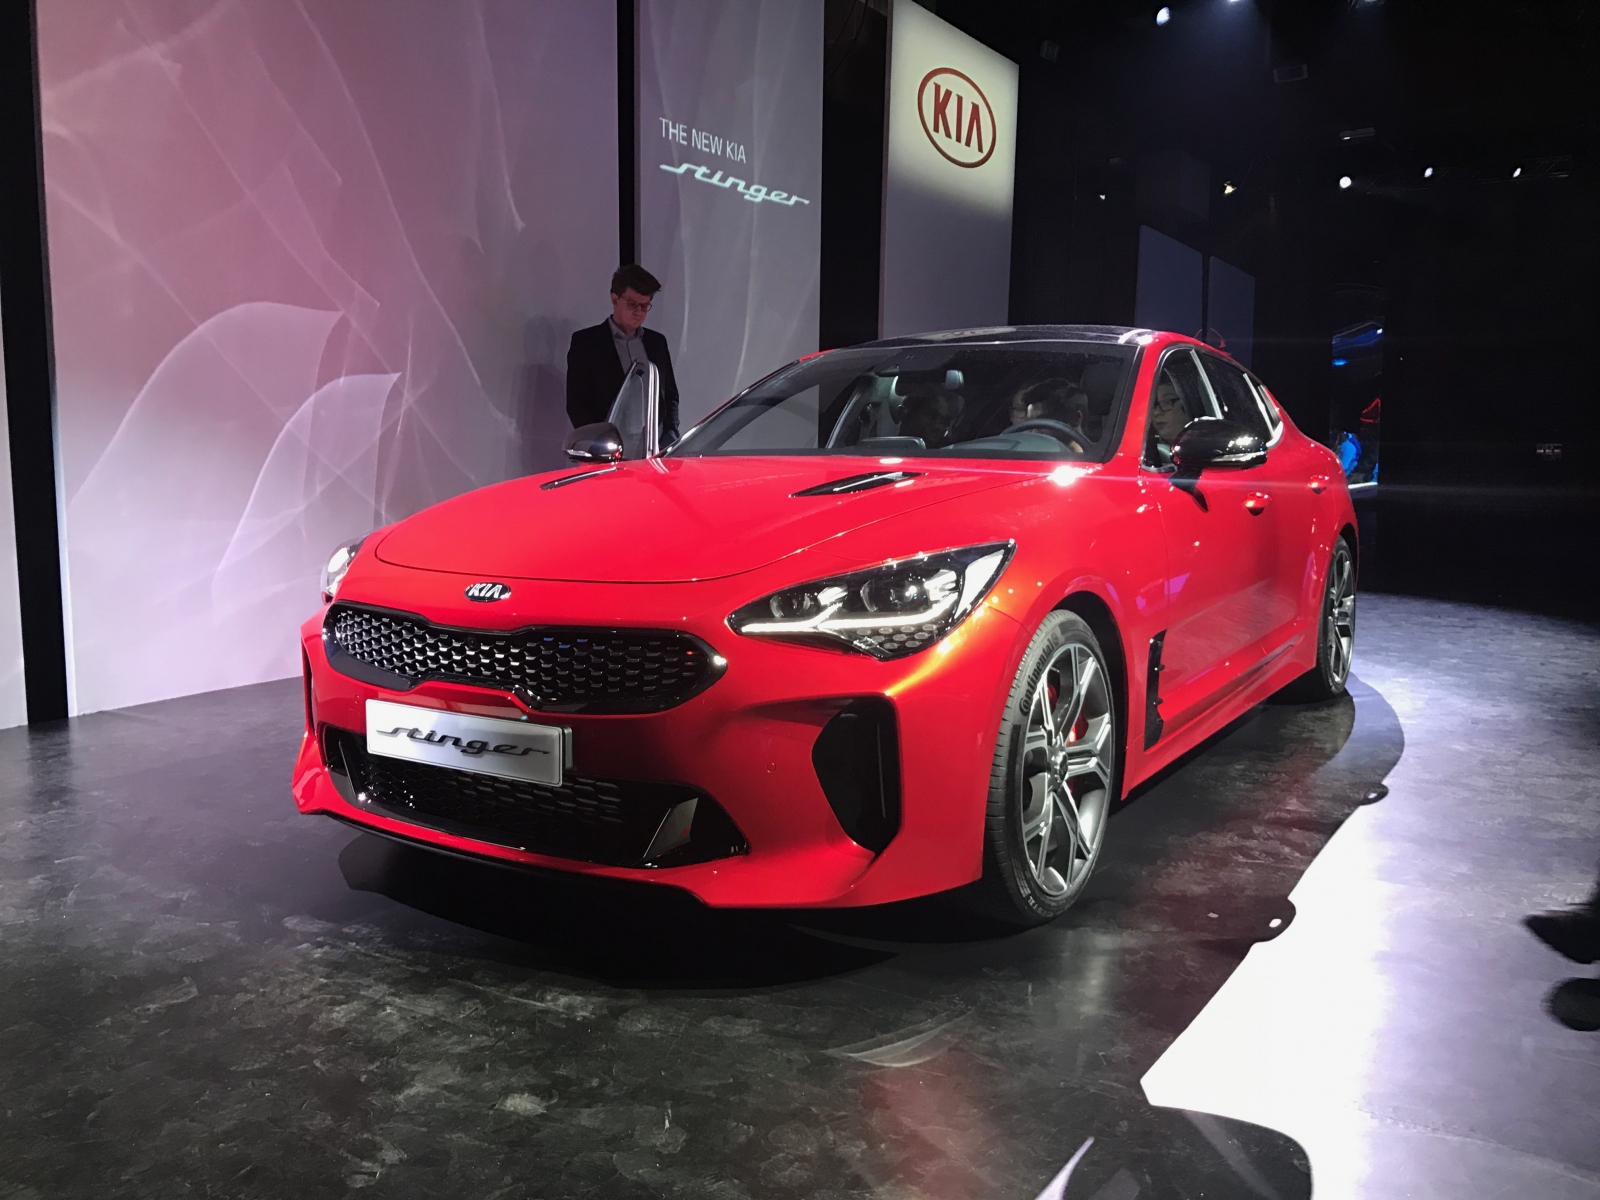 Kia Stinger GT lands in Milan at European launch